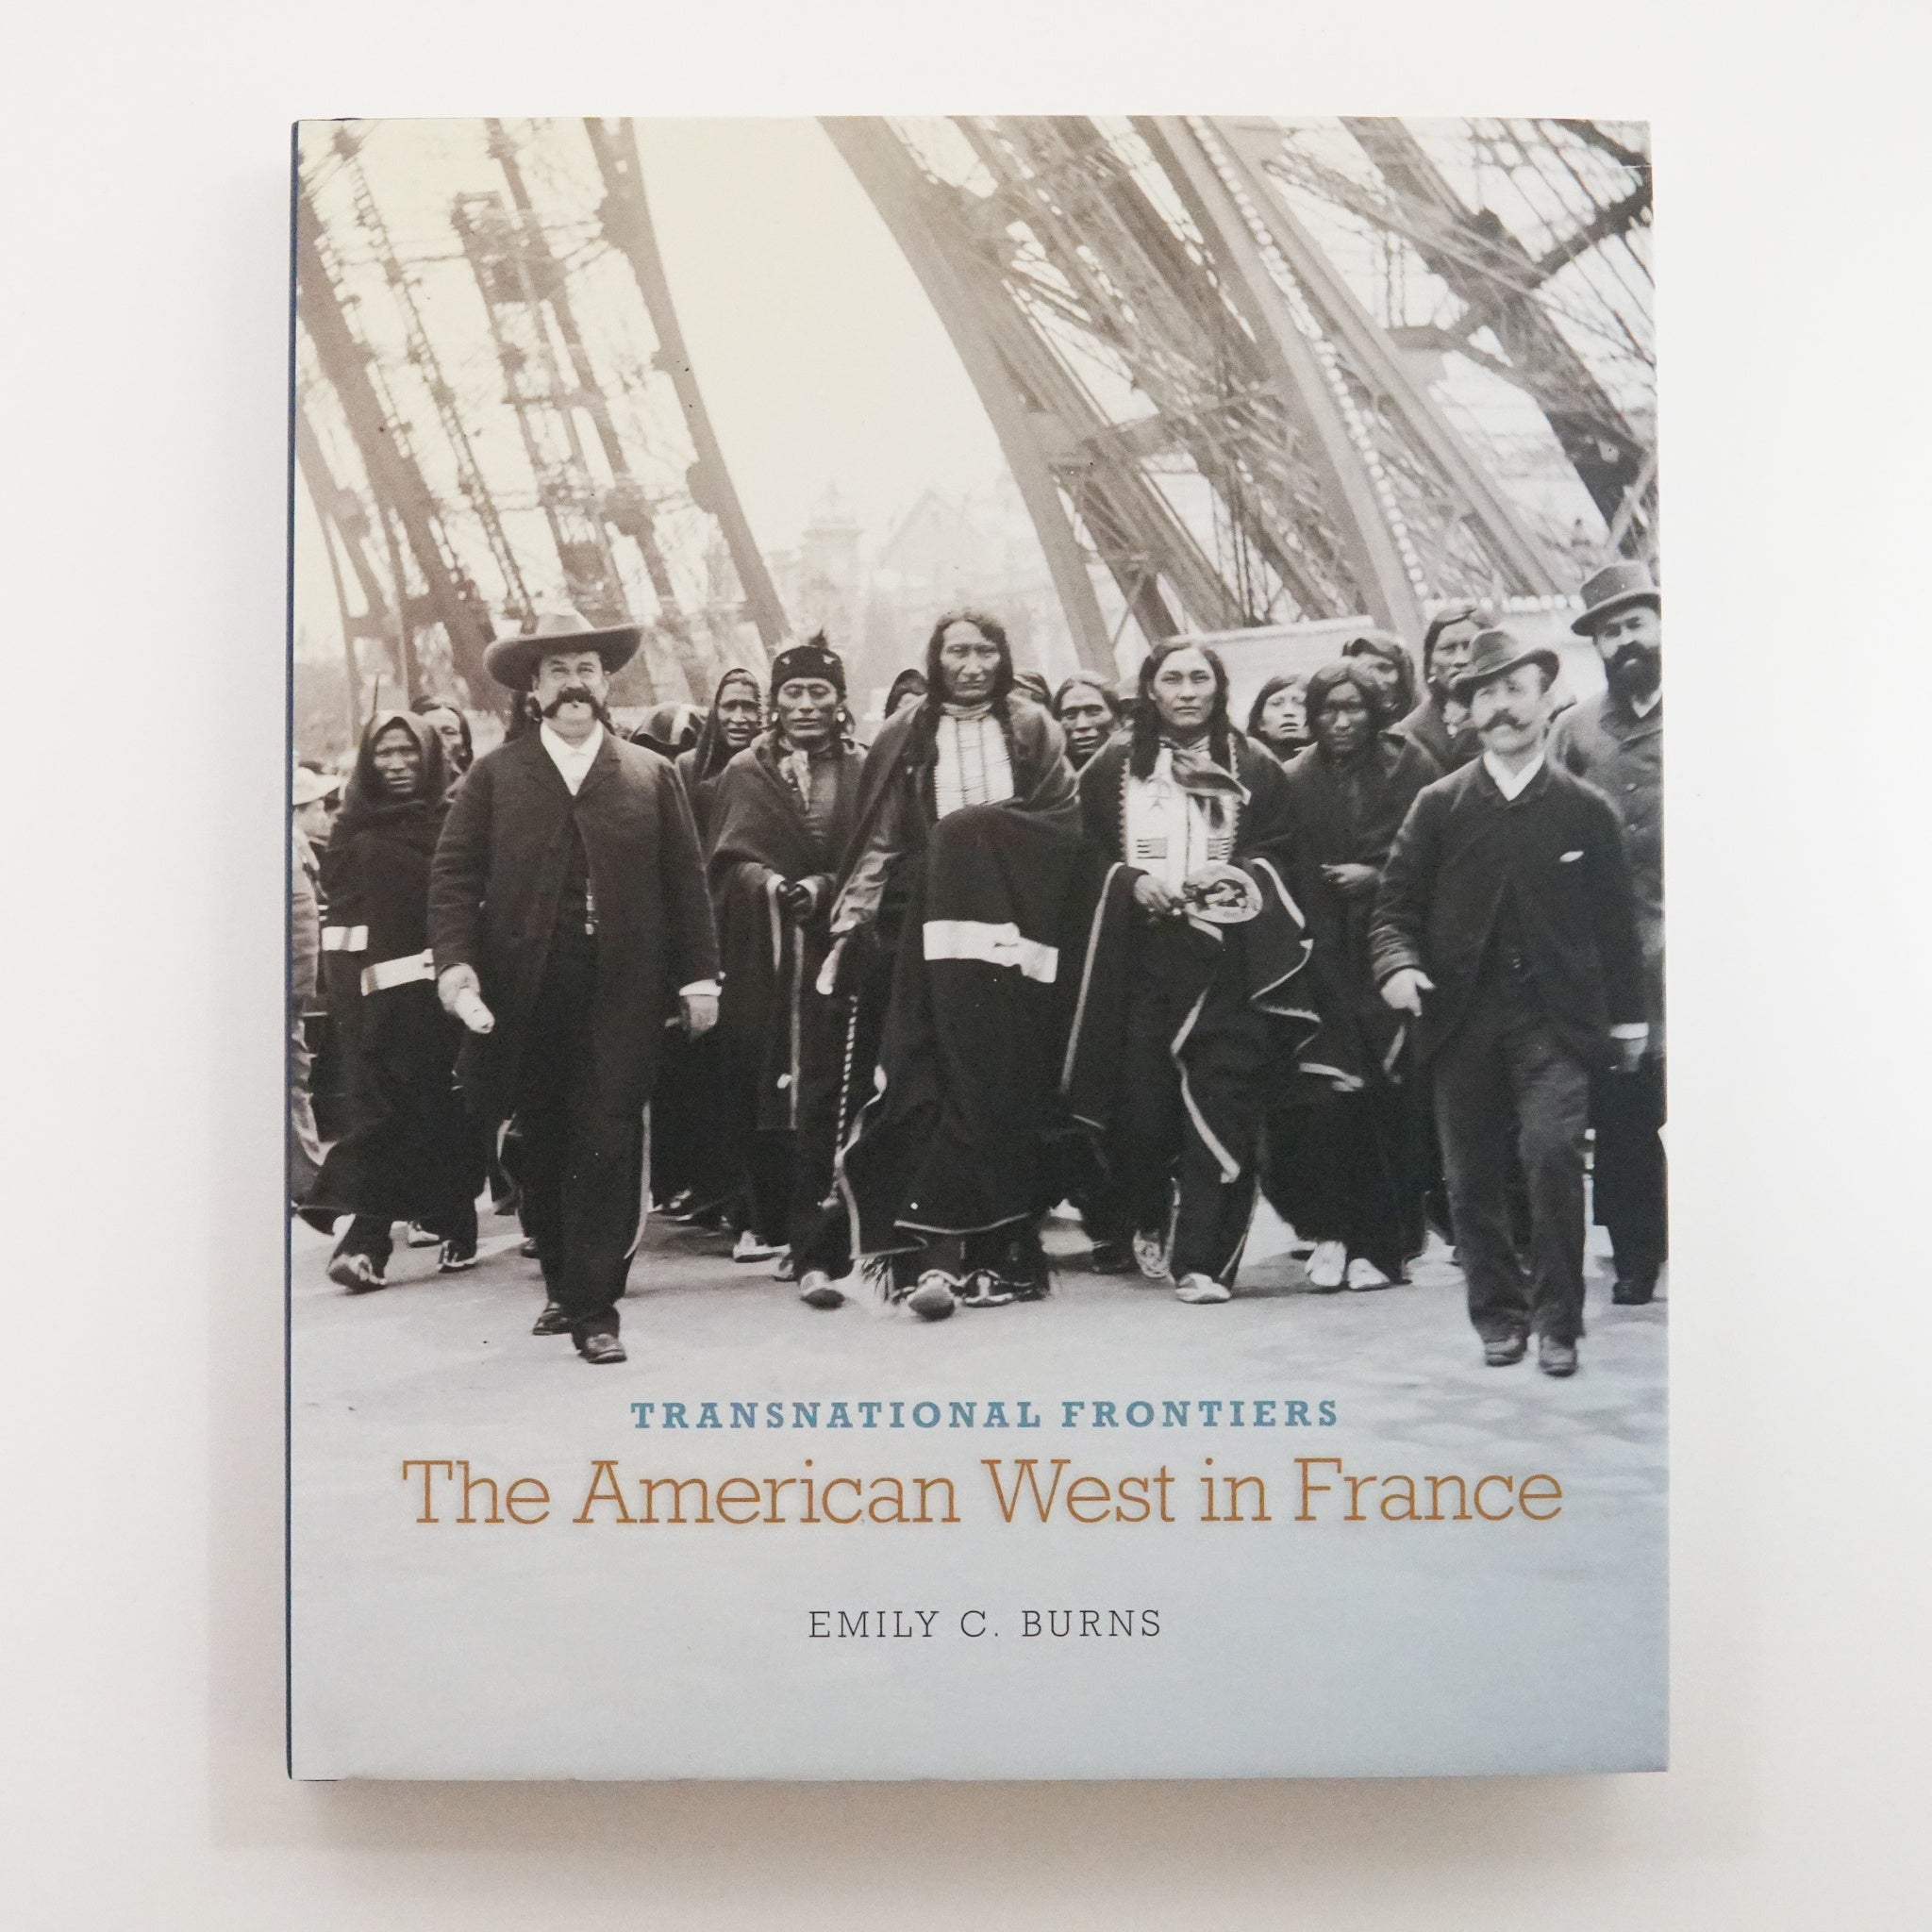 Transnational Frontiers - The American West in France by Emily C. Burns